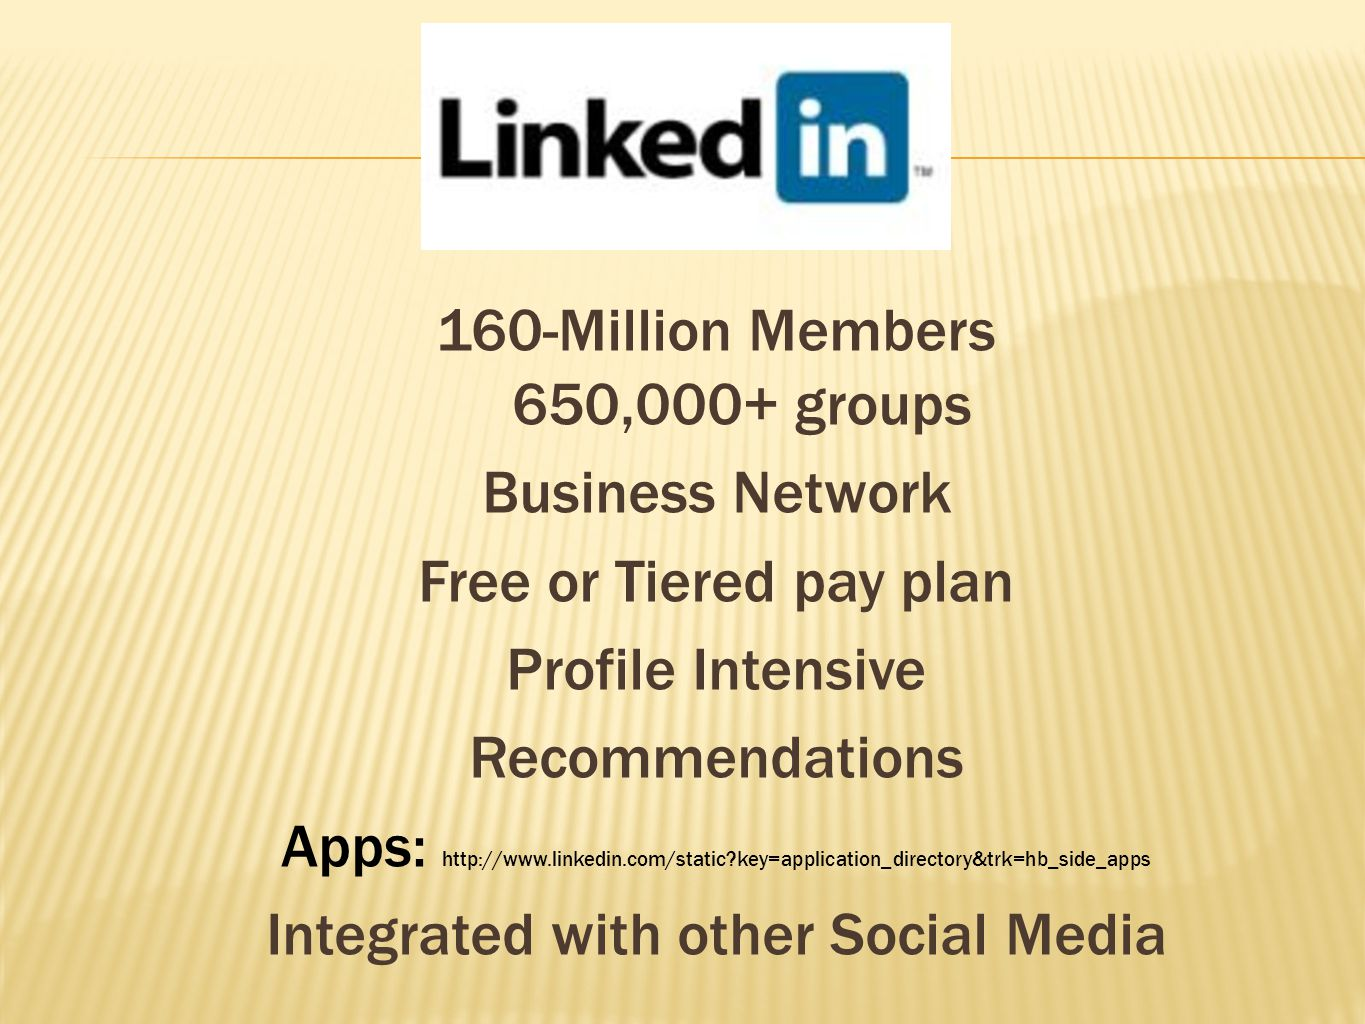 160-Million Members 650,000+ groups Business Network Free or Tiered pay plan Profile Intensive Recommendations Apps: http://www.linkedin.com/static key=application_directory&trk=hb_side_apps Integrated with other Social Media